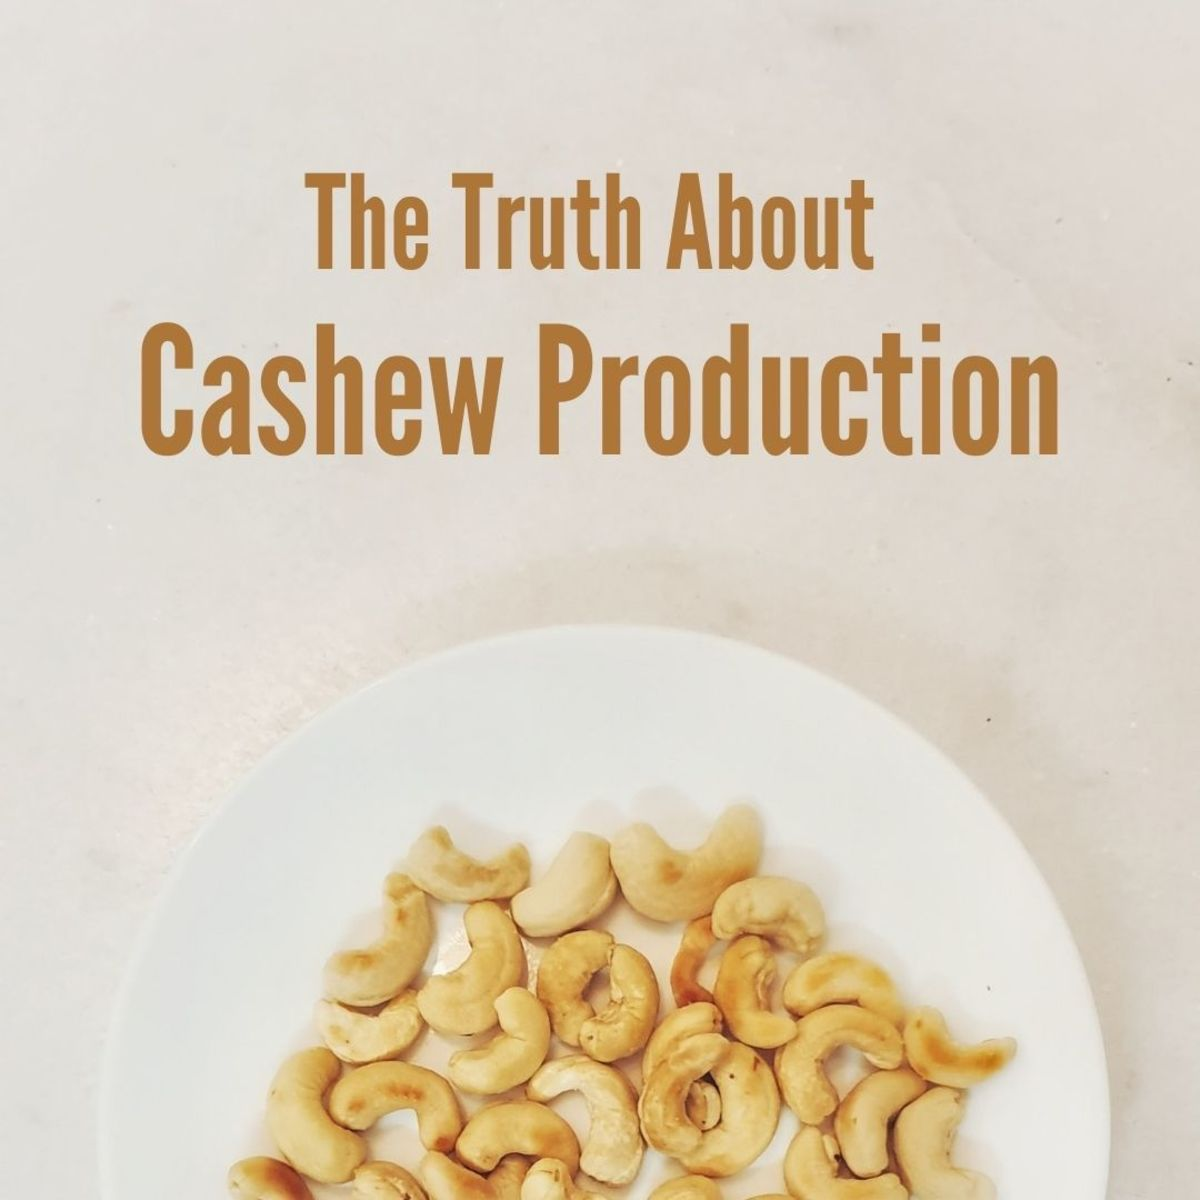 Cashews are a popular nut worldwide, but is the human toll of their production worth it?